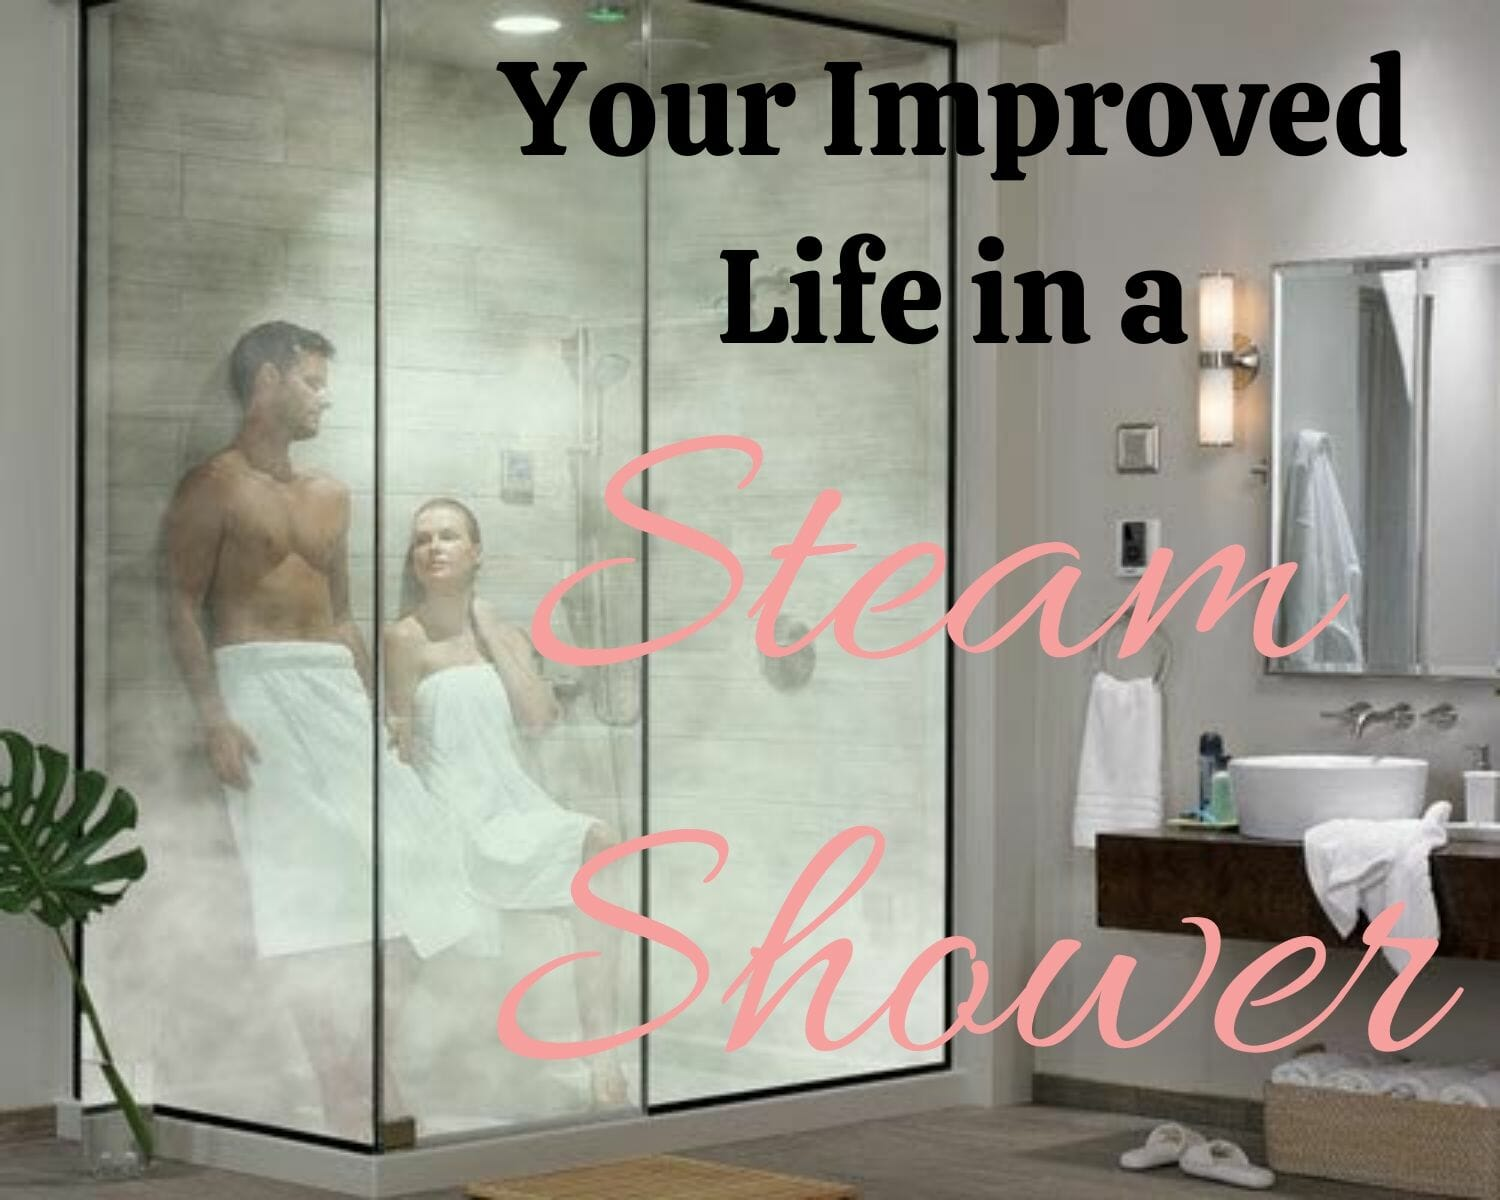 Improve life with a steam shower